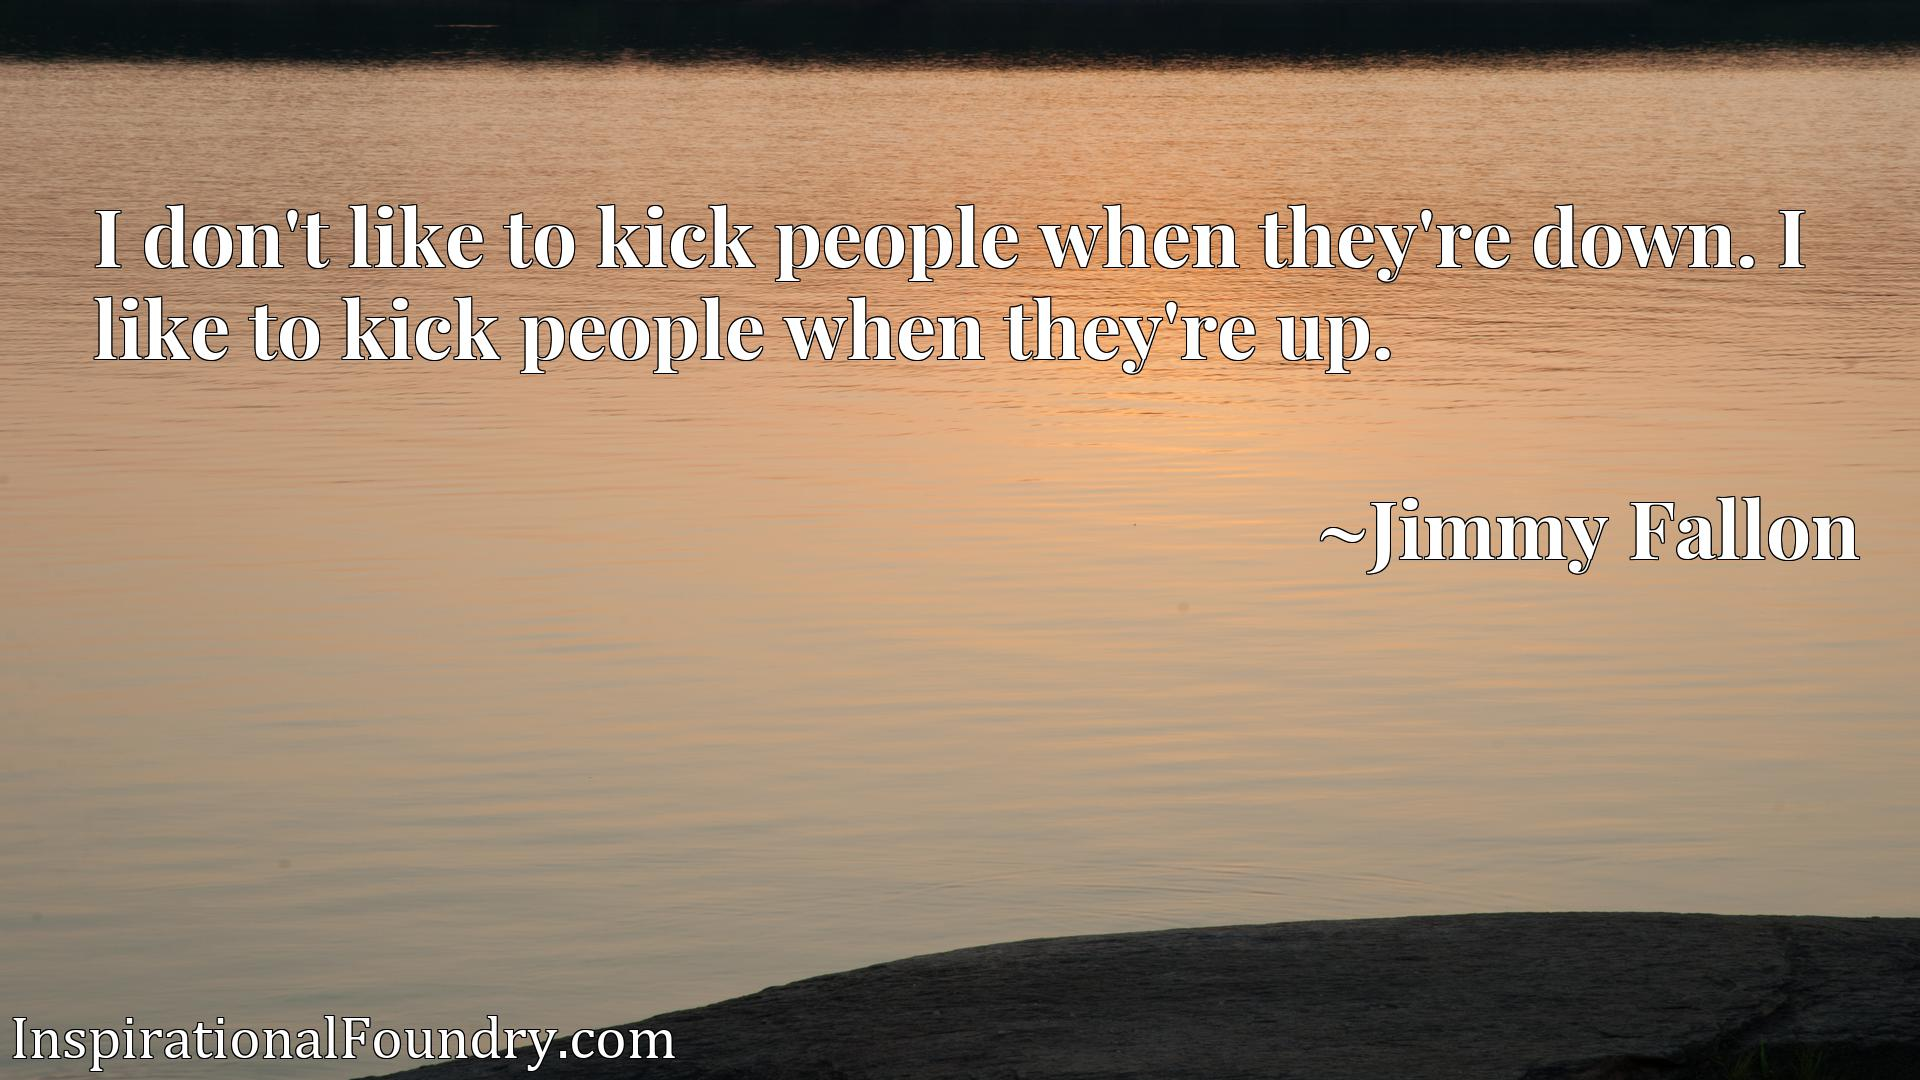 I don't like to kick people when they're down. I like to kick people when they're up.